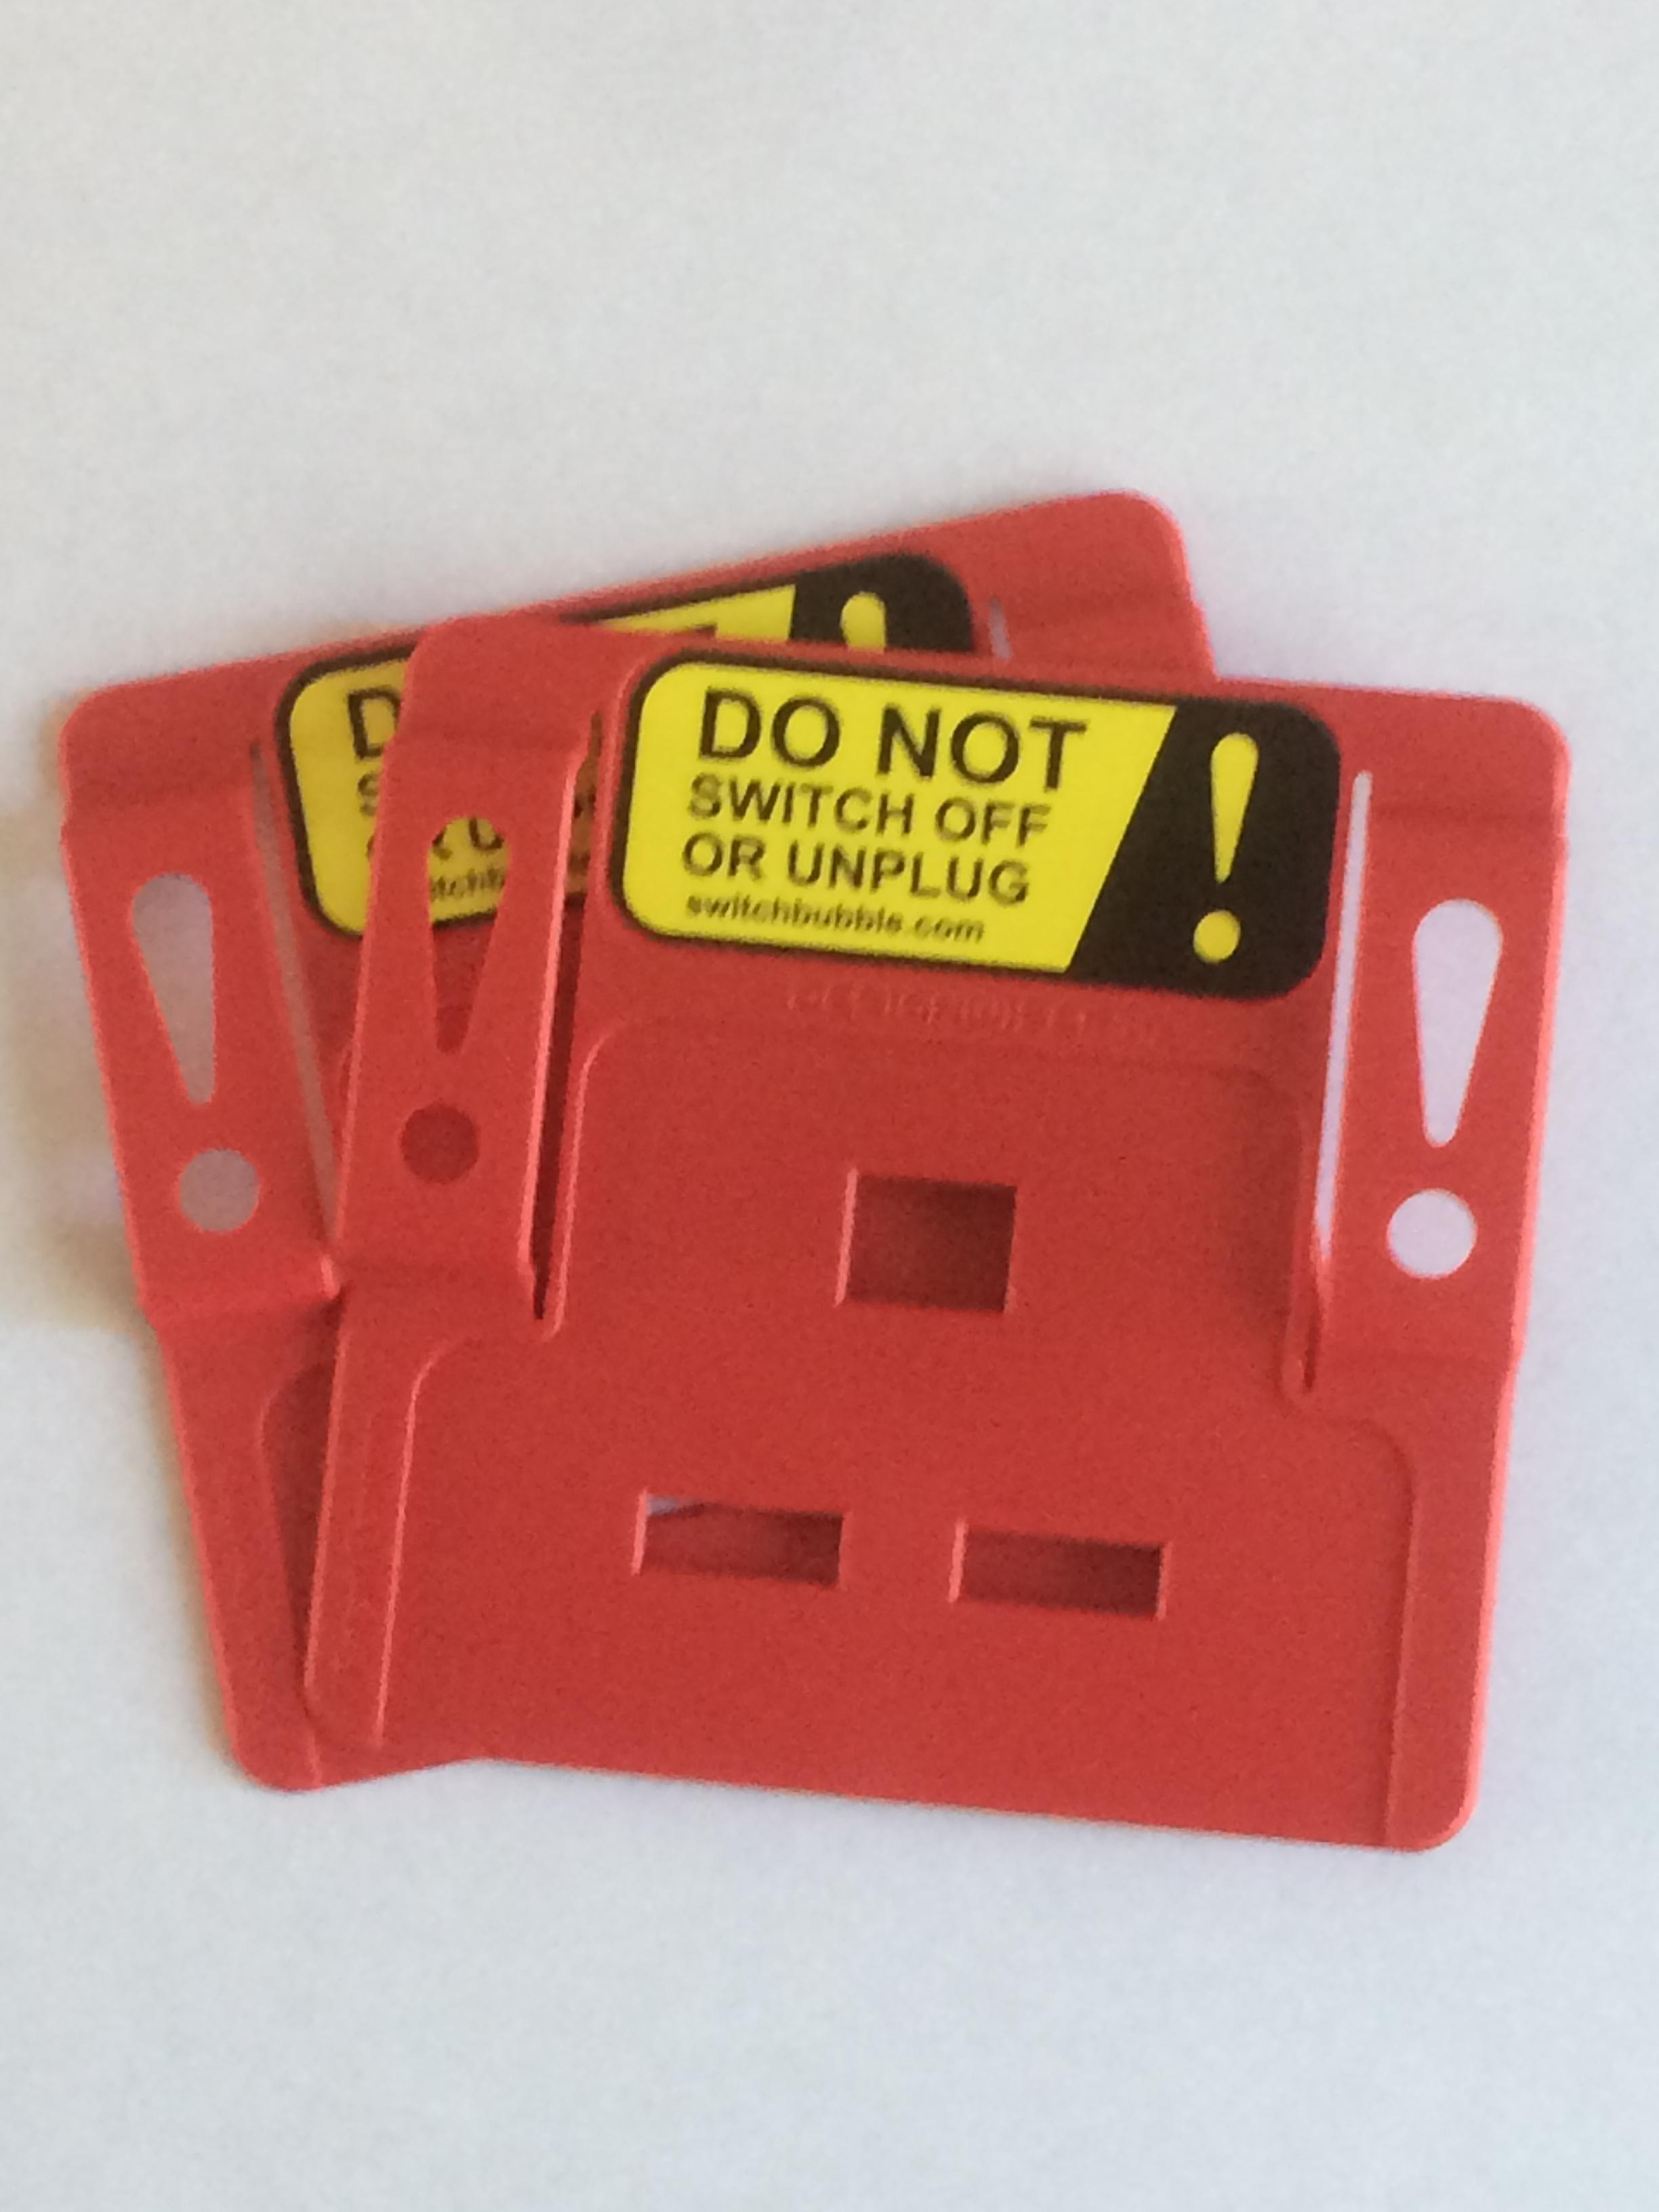 Dual pack (quantity 2) SwitchBubble Power Protectors in red. Price (inc VAT & delivery):